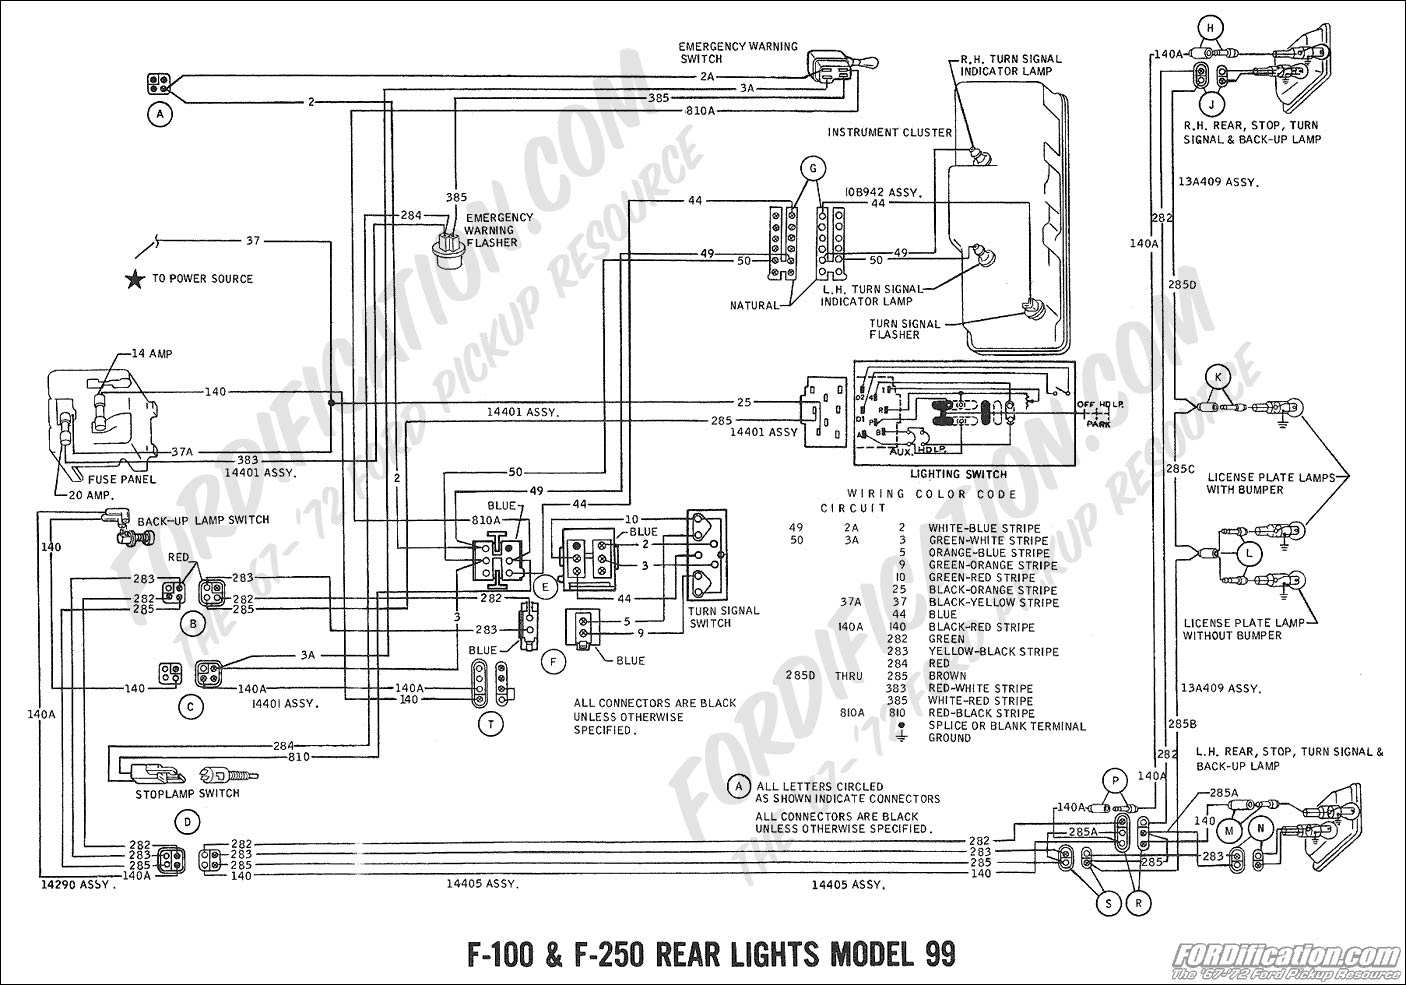 XL GXL Models in addition Schematics h additionally Hand Off Auto Start Motor Wiring Diagram in addition Wiring Diagram 95 International 4700 also Hazard Flasher Location On 2008 Ranger. on fiat ducato horn wiring diagram